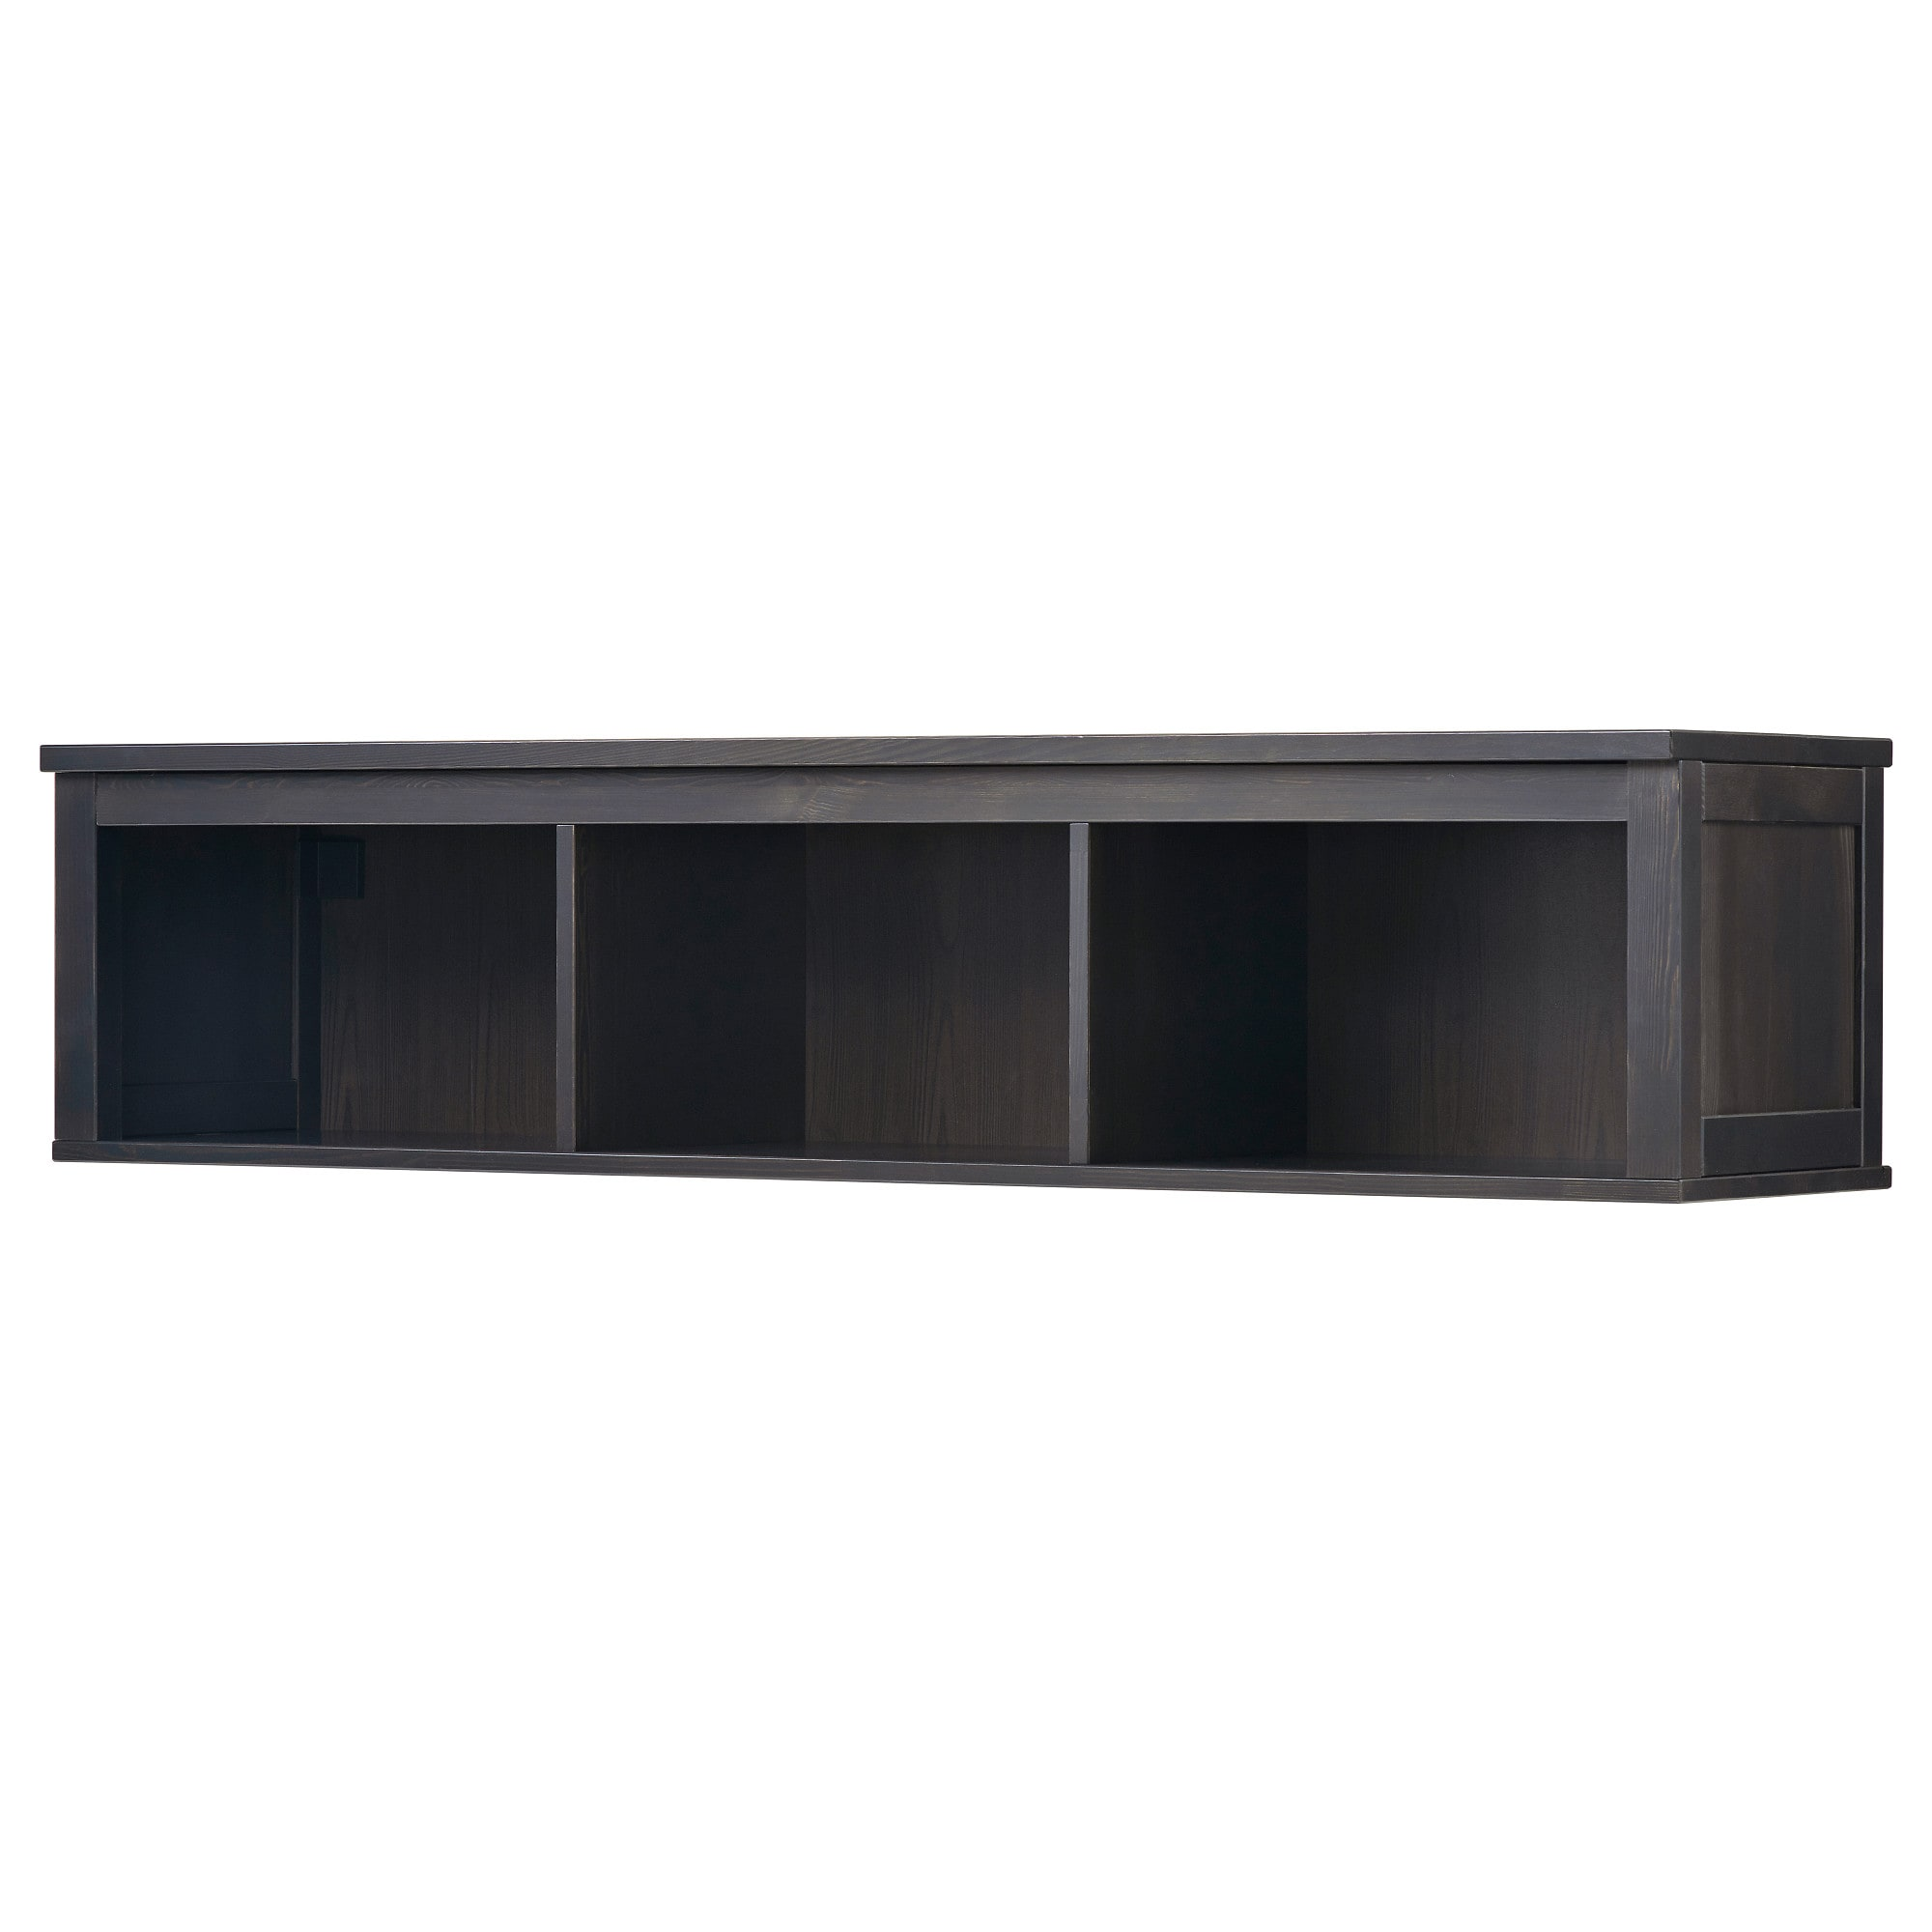 floating shelves wall shelf brackets ikea hemnes bridging black brown and solid wood has natural feel wooden corner stand metal coat rack mounted garage storage systems ribba ture